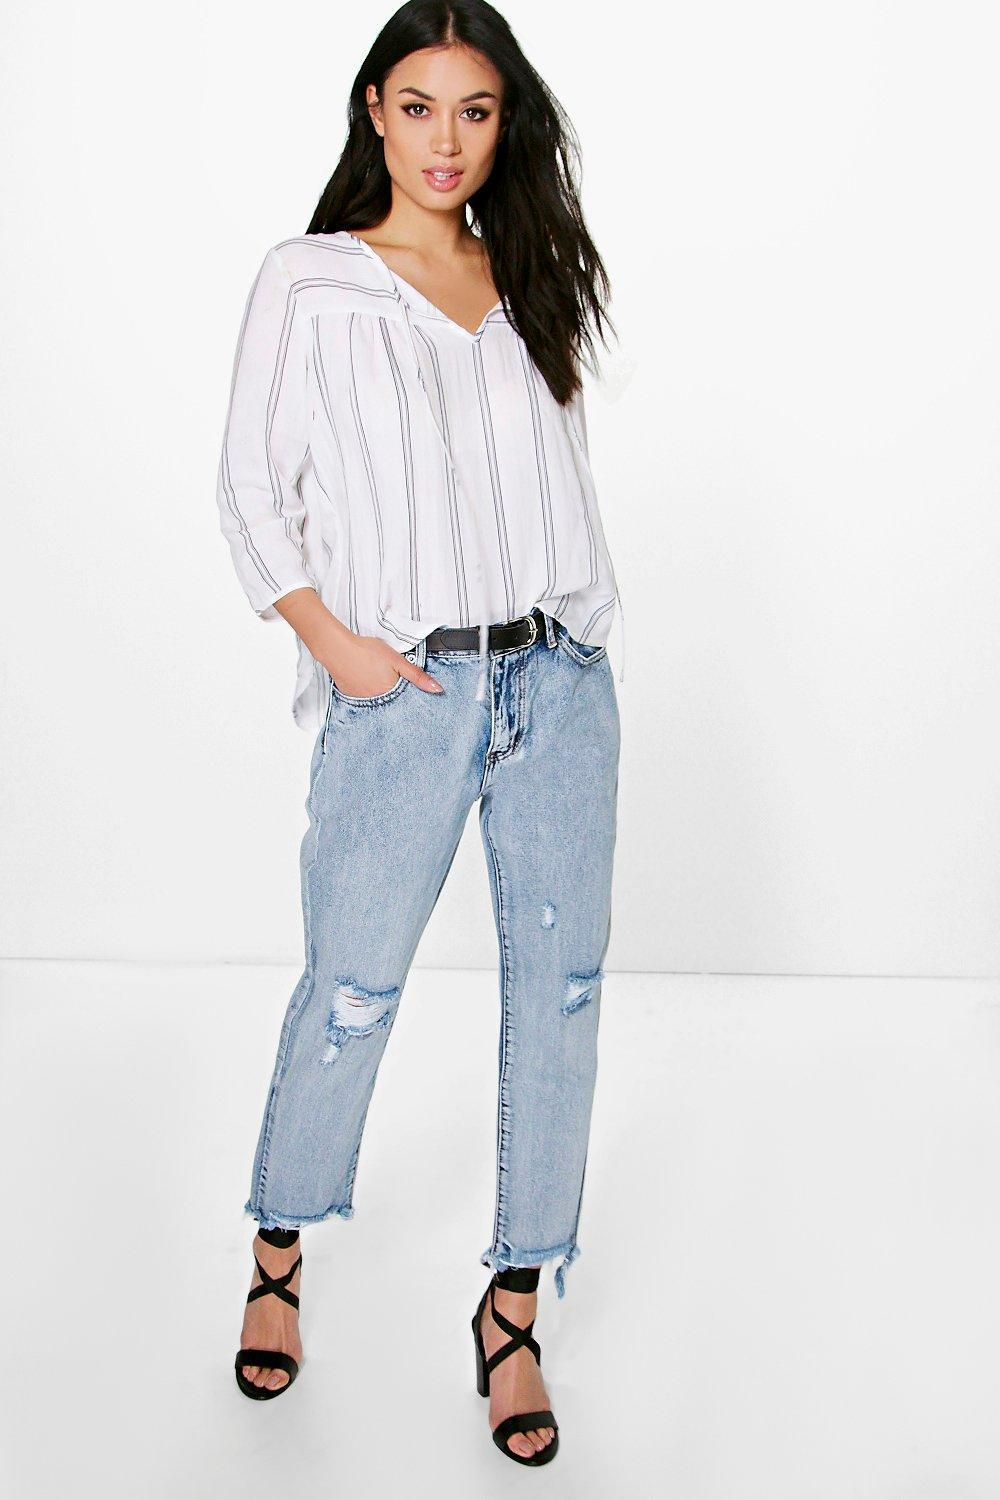 Fray Hem Distressed Mom Jeans Blue - style: boyfriend; pattern: plain; pocket detail: traditional 5 pocket; waist: mid/regular rise; predominant colour: pale blue; occasions: casual; length: ankle length; fibres: cotton - 100%; texture group: denim; pattern type: fabric; jeans detail: rips; season: s/s 2016